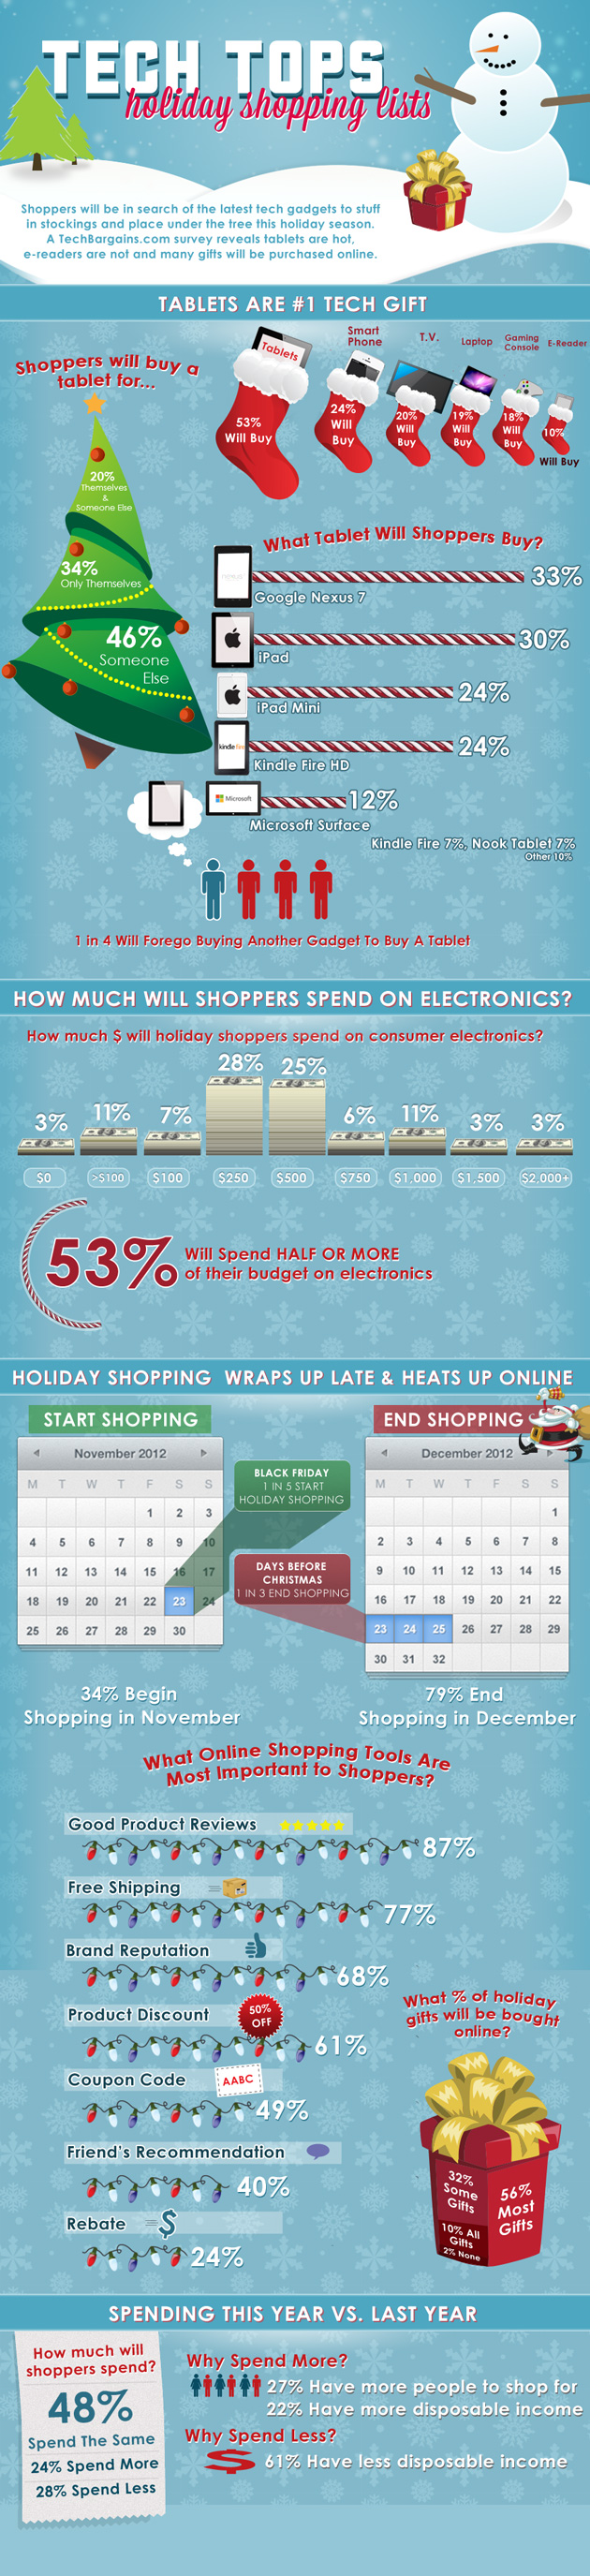 Top Tech Gifts for Christmas 2012-Infographic